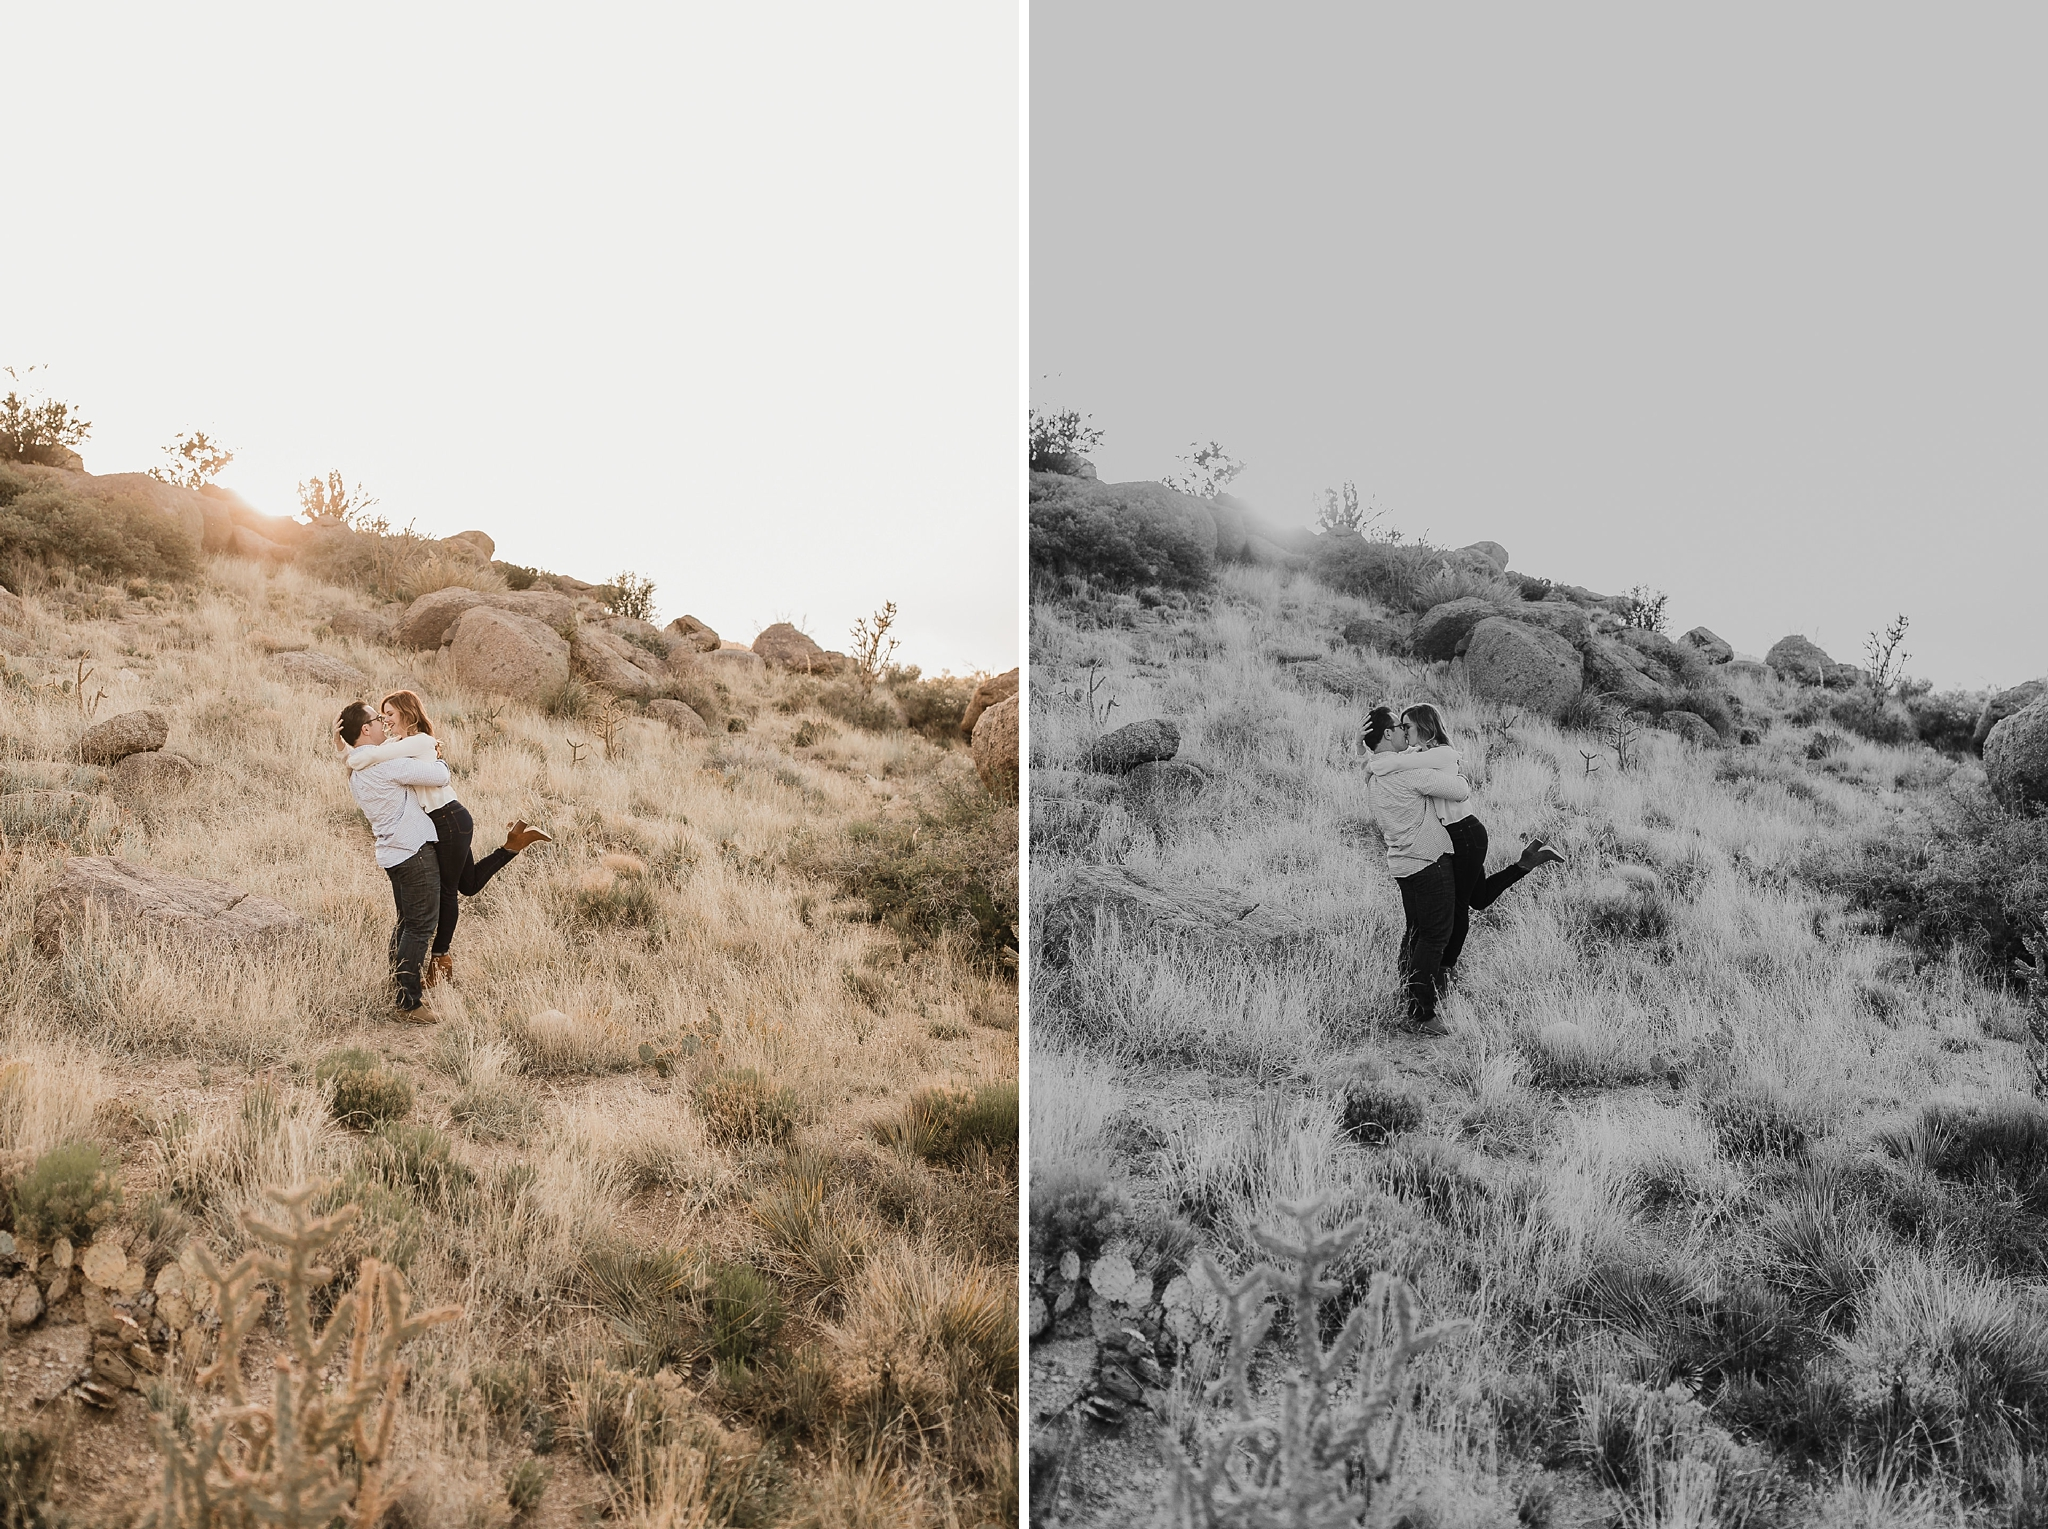 Alicia+lucia+photography+-+albuquerque+wedding+photographer+-+santa+fe+wedding+photography+-+new+mexico+wedding+photographer+-+new+mexico+wedding+-+new+mexico+engagement+-+engagement+photographer+-+mountain+engagement+-+desert+engagement_0013.jpg